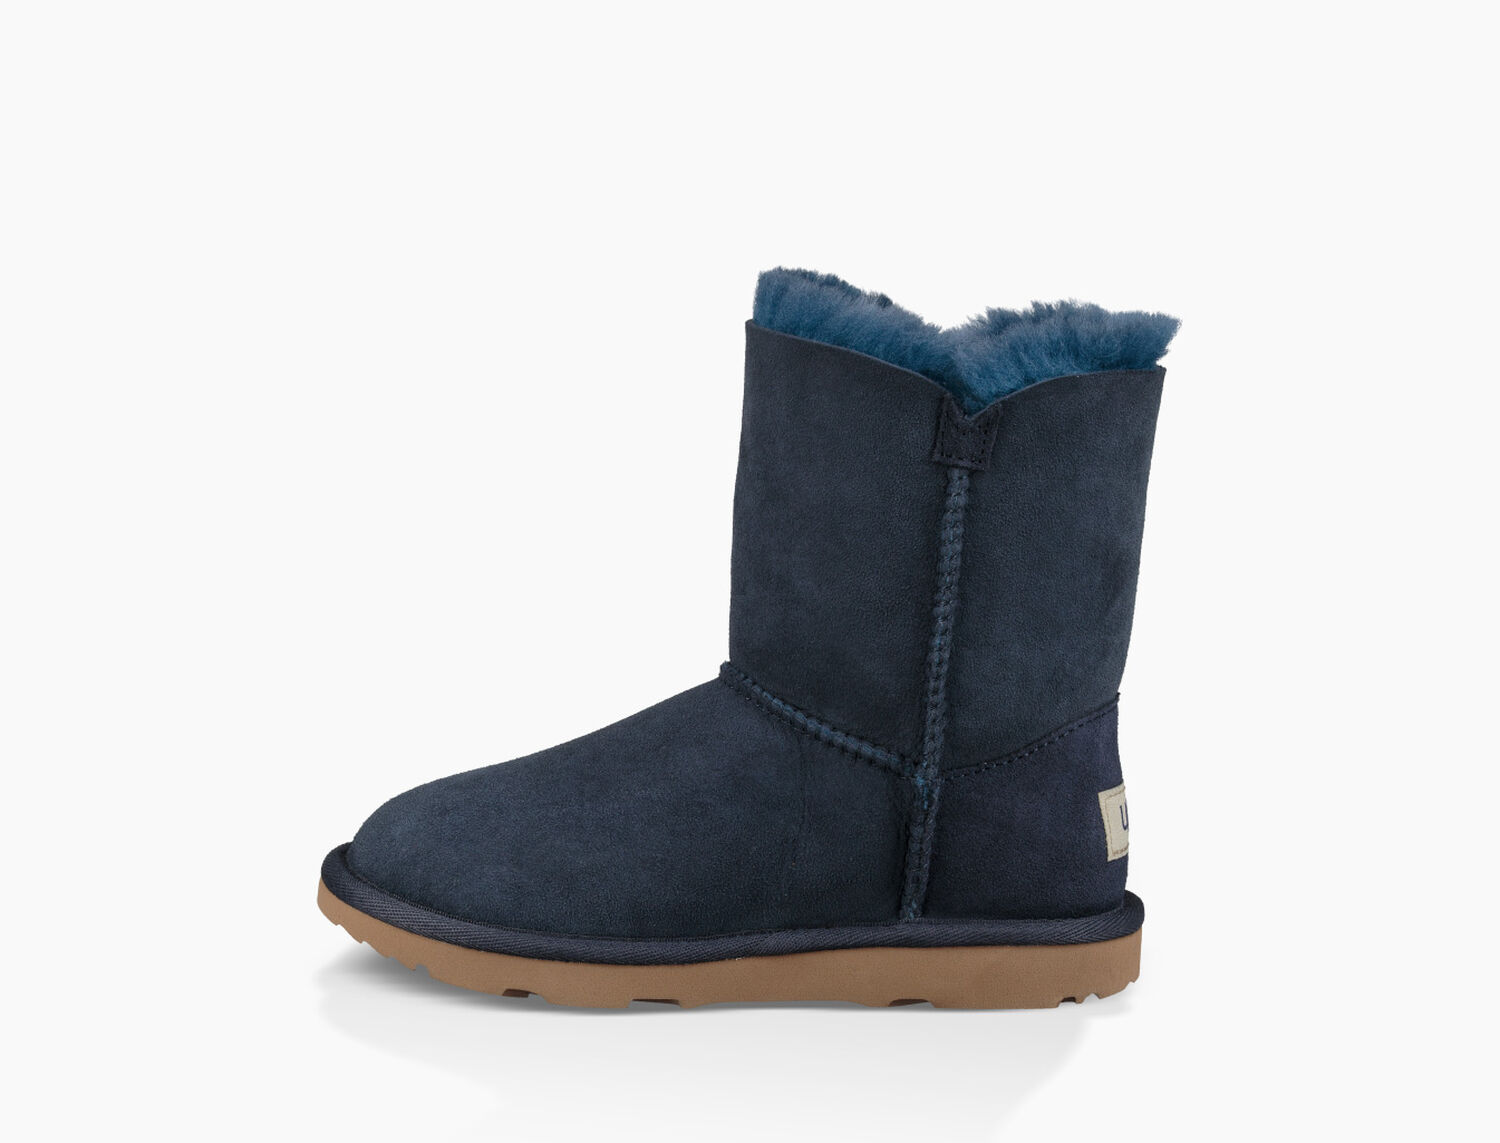 77531bdc824 Kids' Share this product Bailey Button II Boot